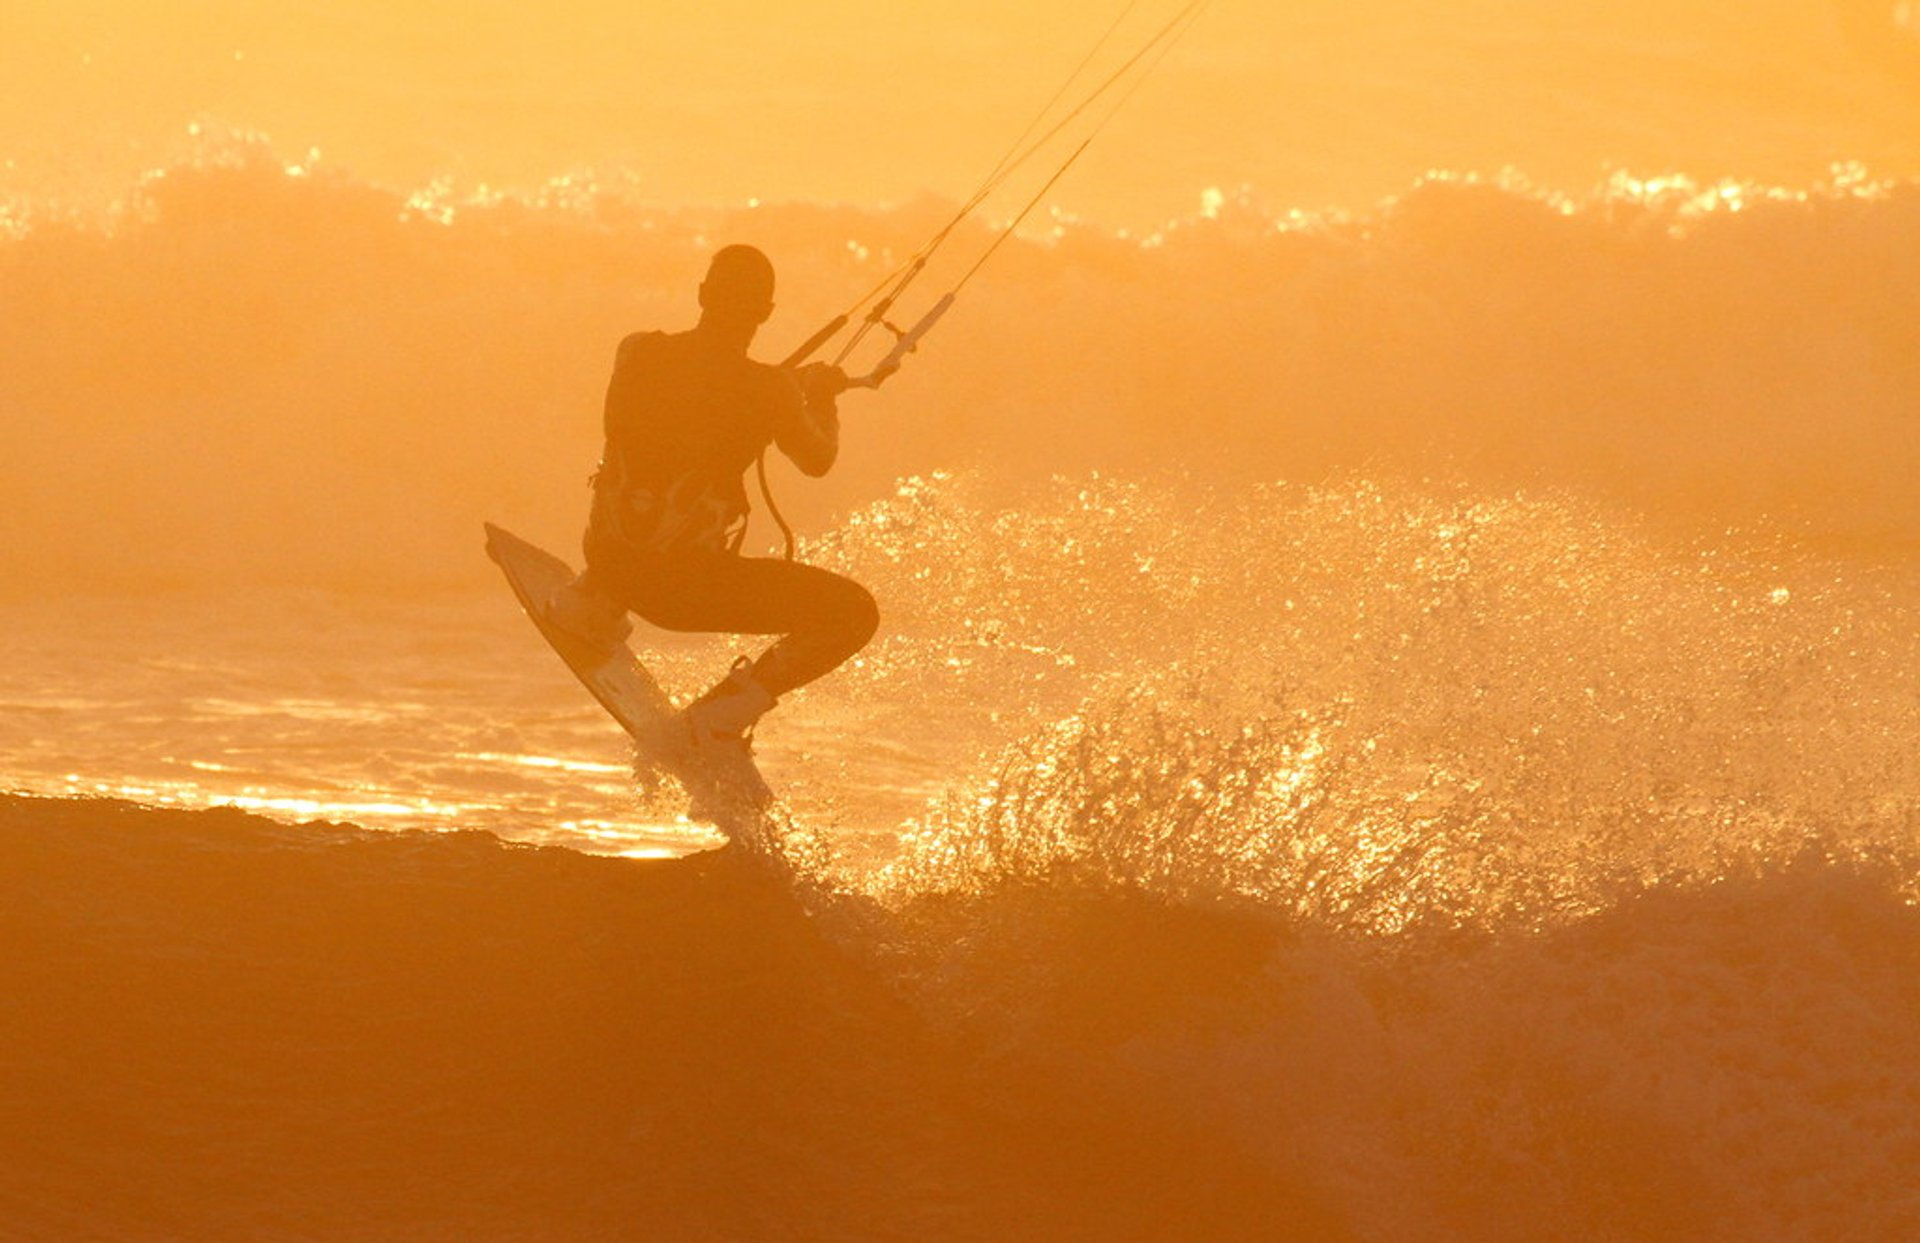 Kitesurfer at Blouberg Beach, Cape Town 2020